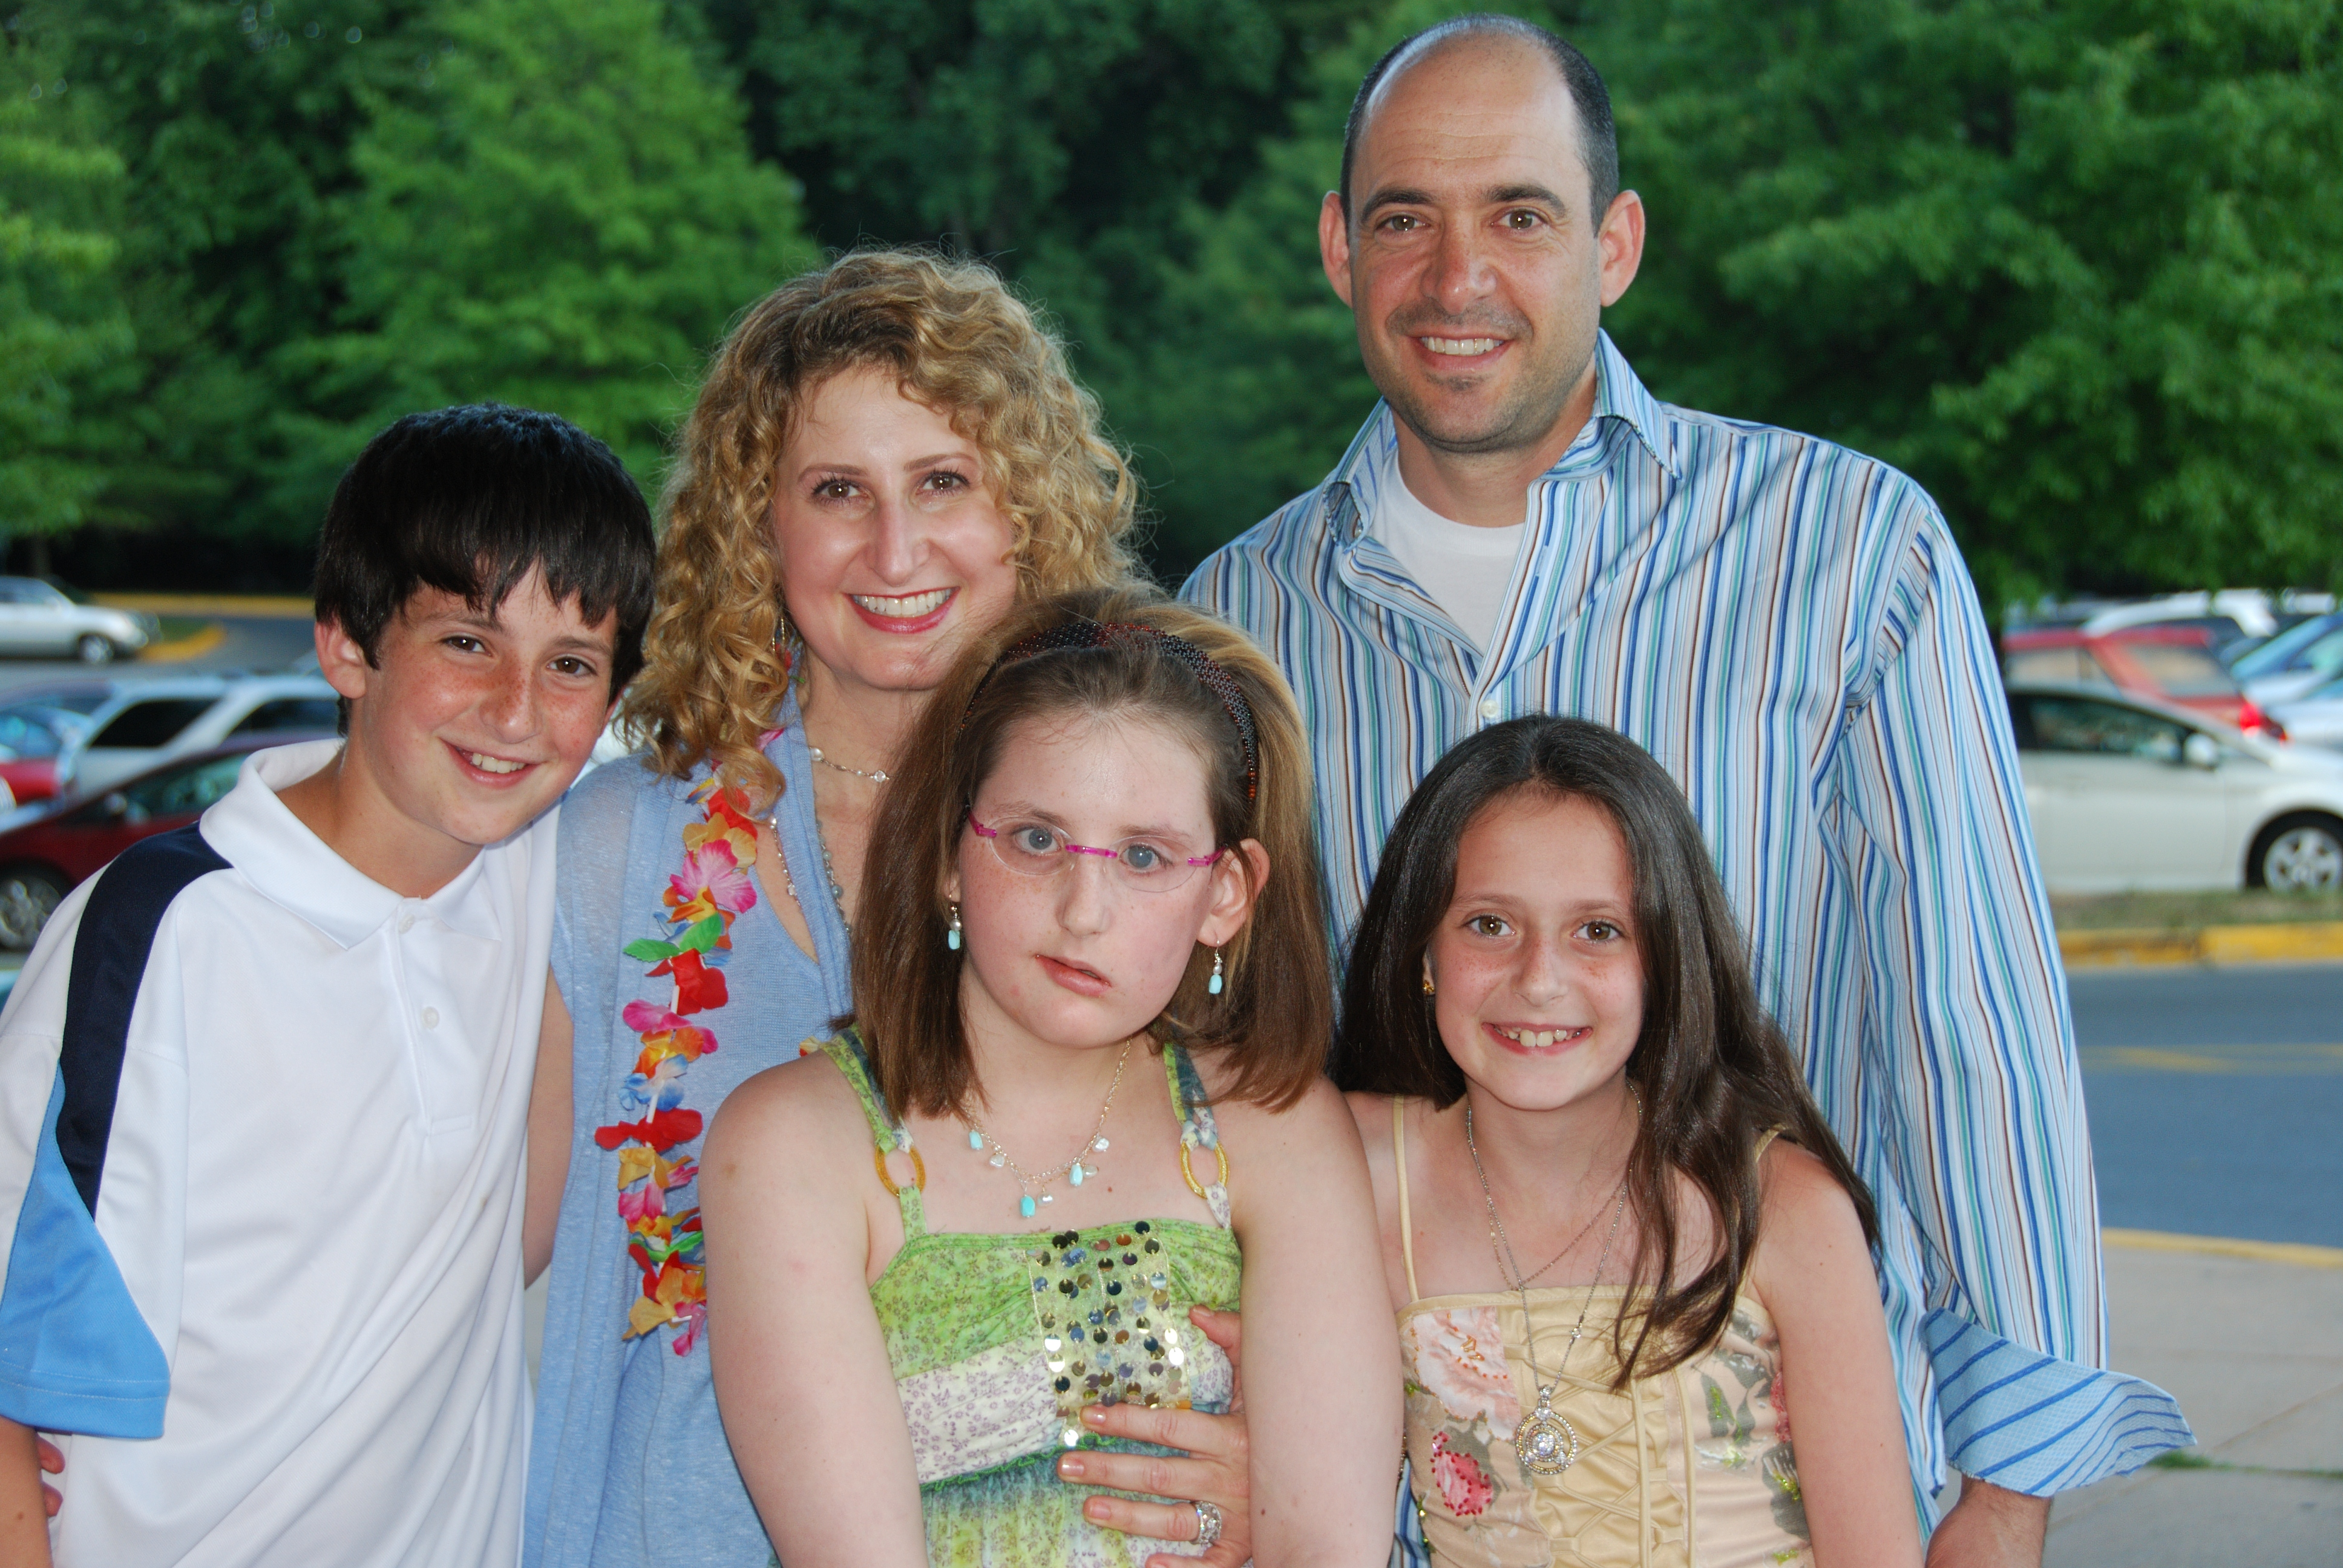 Kayla Elementary School Graduation With Sam Laurie Eric And Madeleine Wenger 06 14 2011